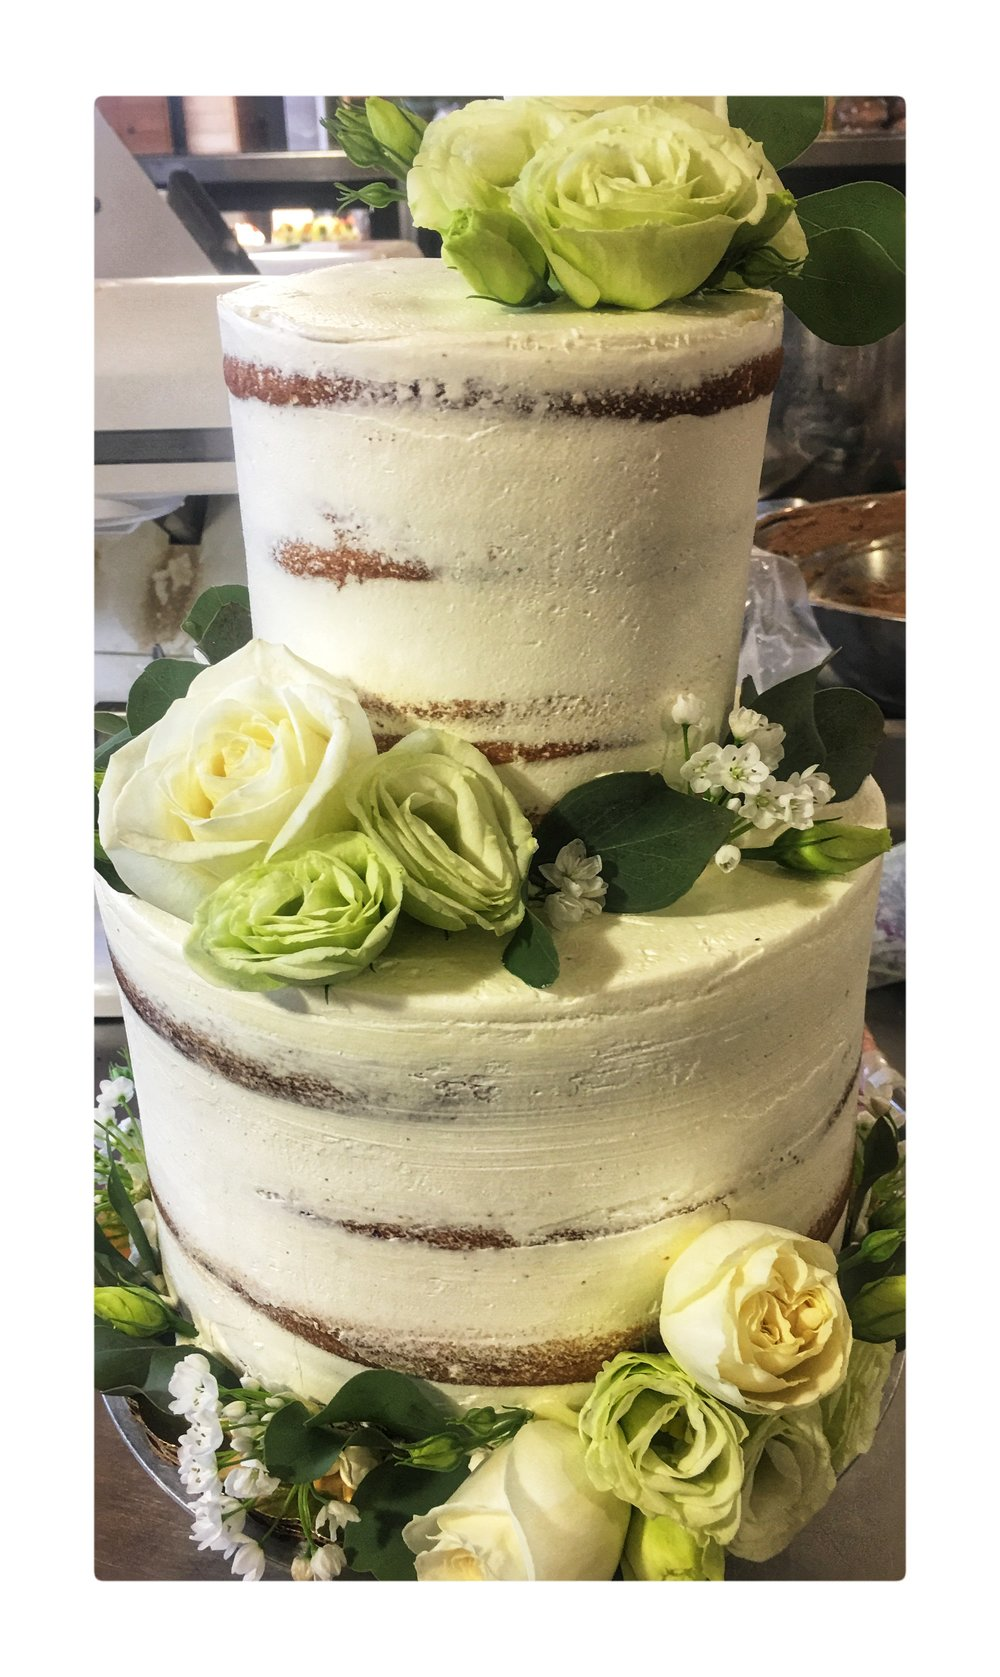 Cake decorated with fresh flowers and distressed frosting.